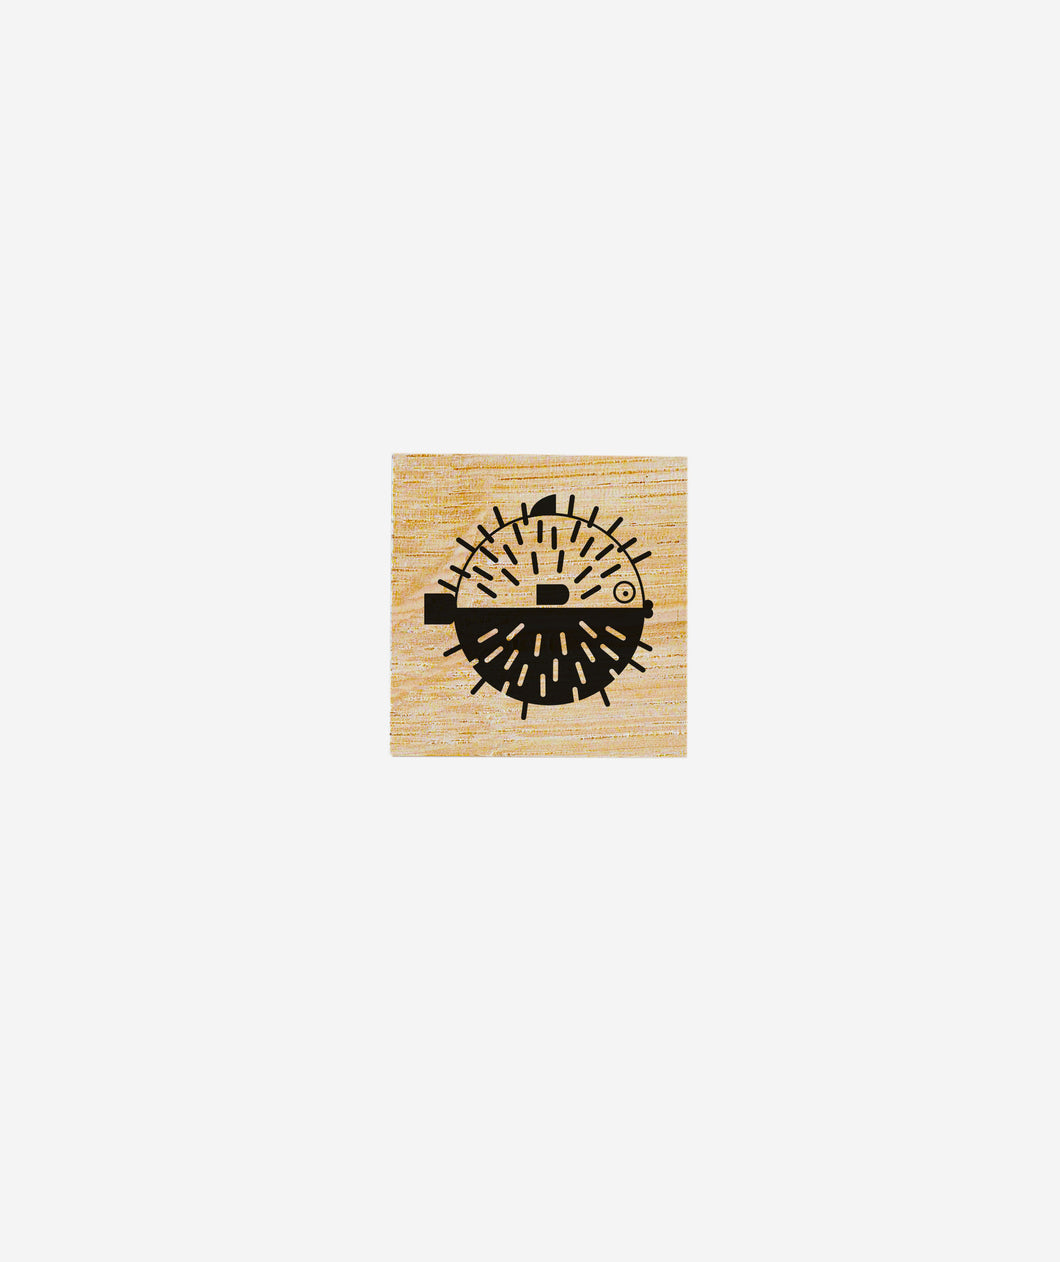 Blowfish Stamp